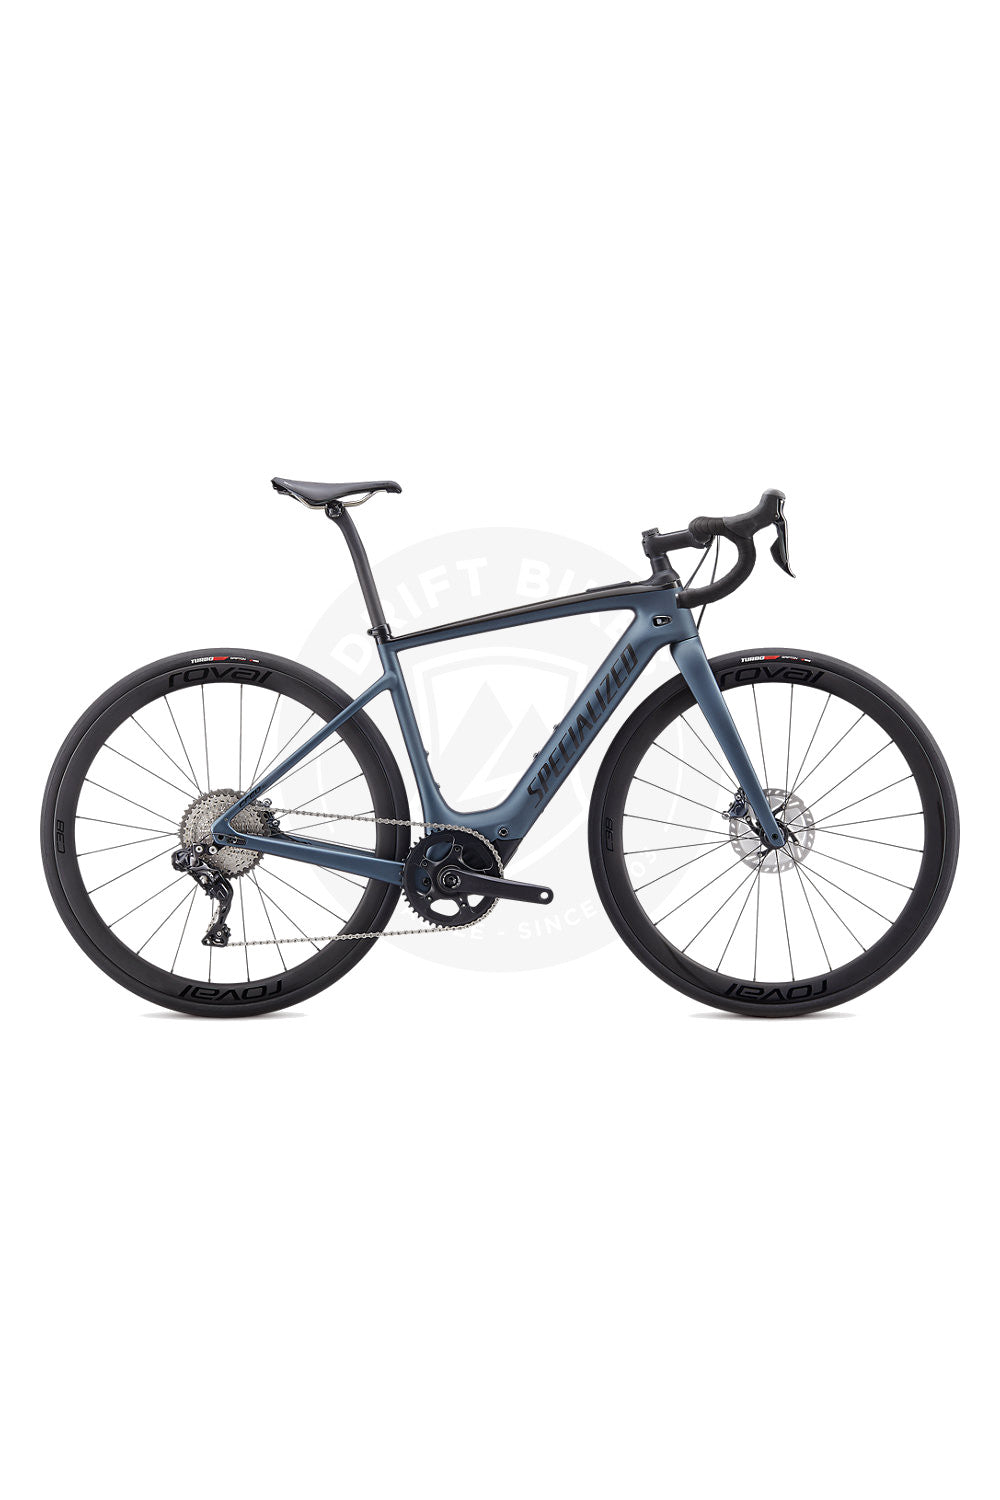 2020 SPECIALIZED TURBO CREO SL EXPERT